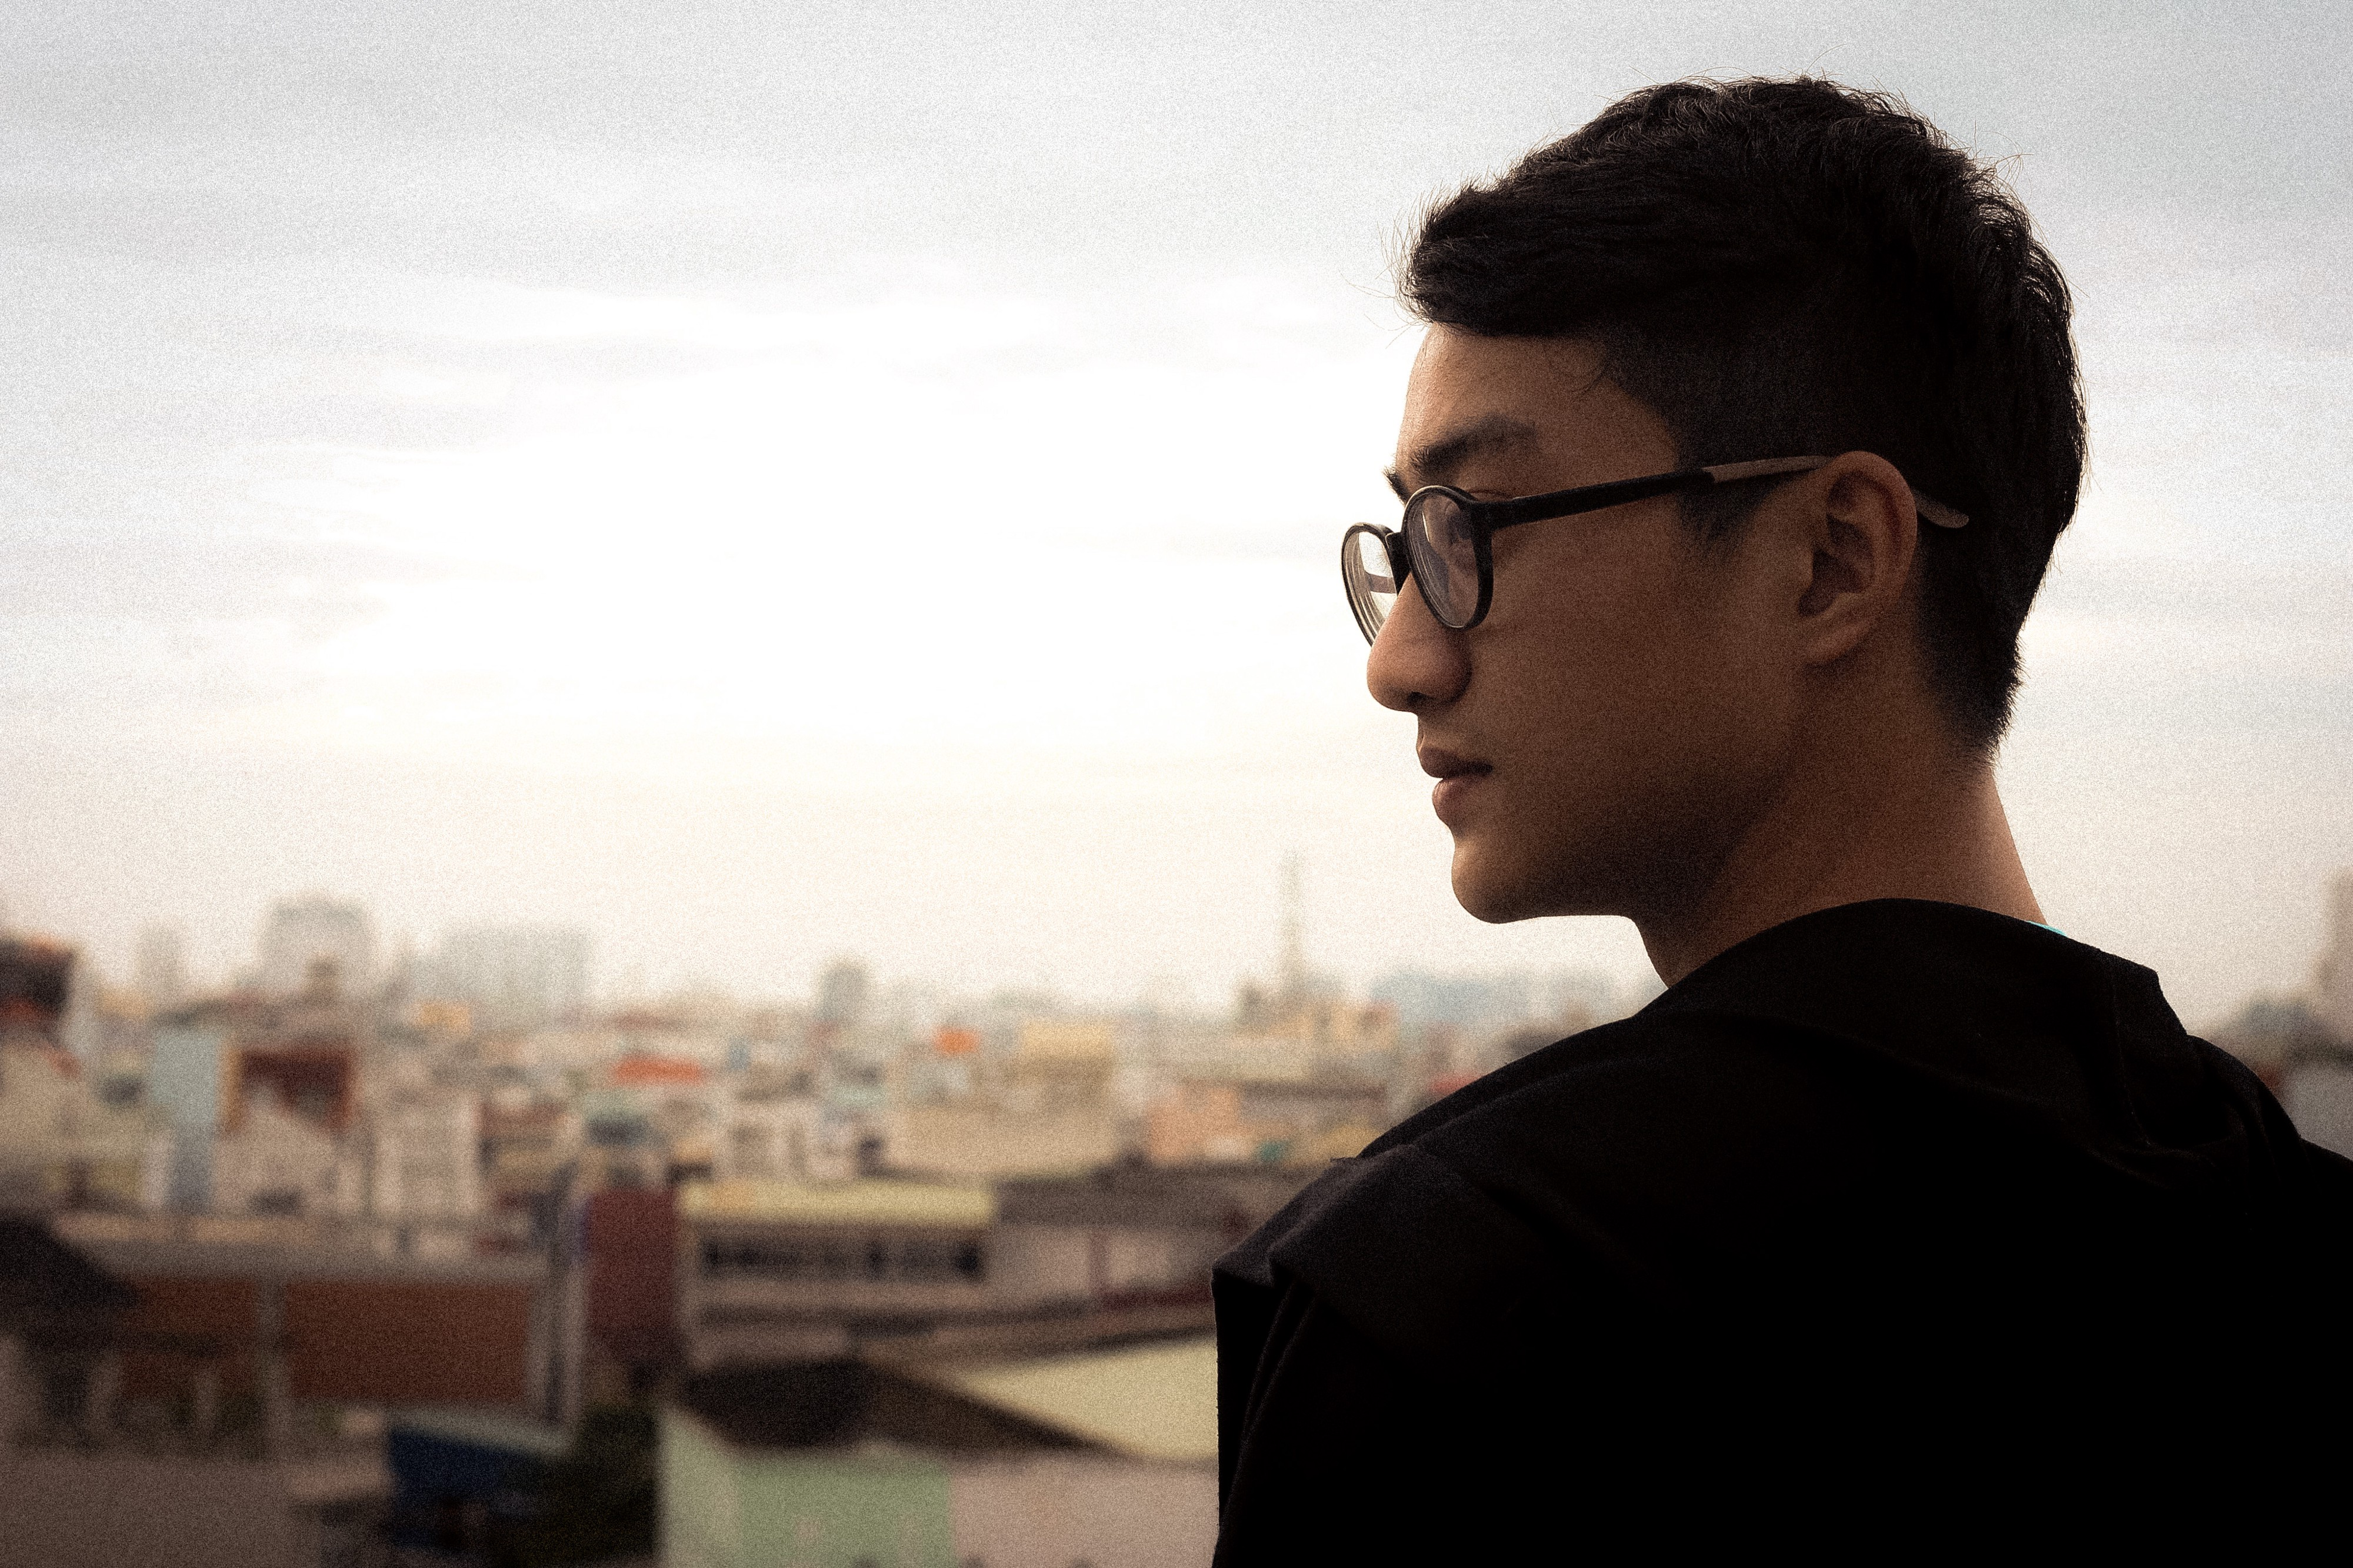 Man with glasses standing on rooftop looking sideways.